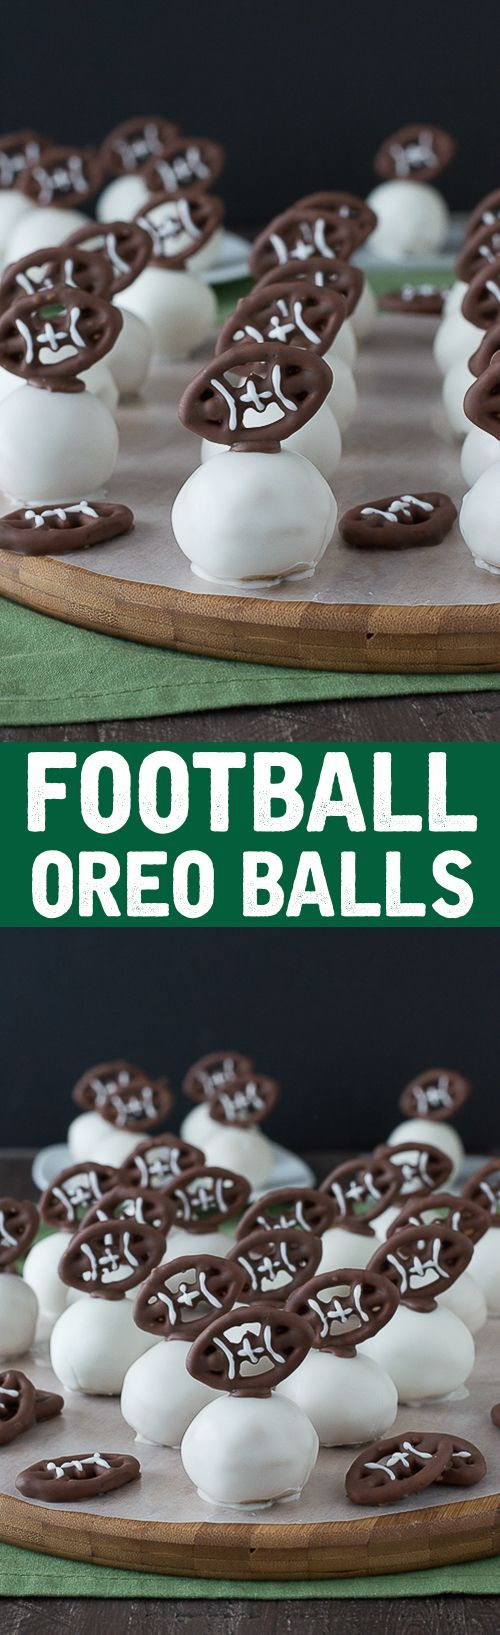 Football Oreo Balls - golden oreo balls dipped in white chocolate and topped with football pretzels! Make these for game day!